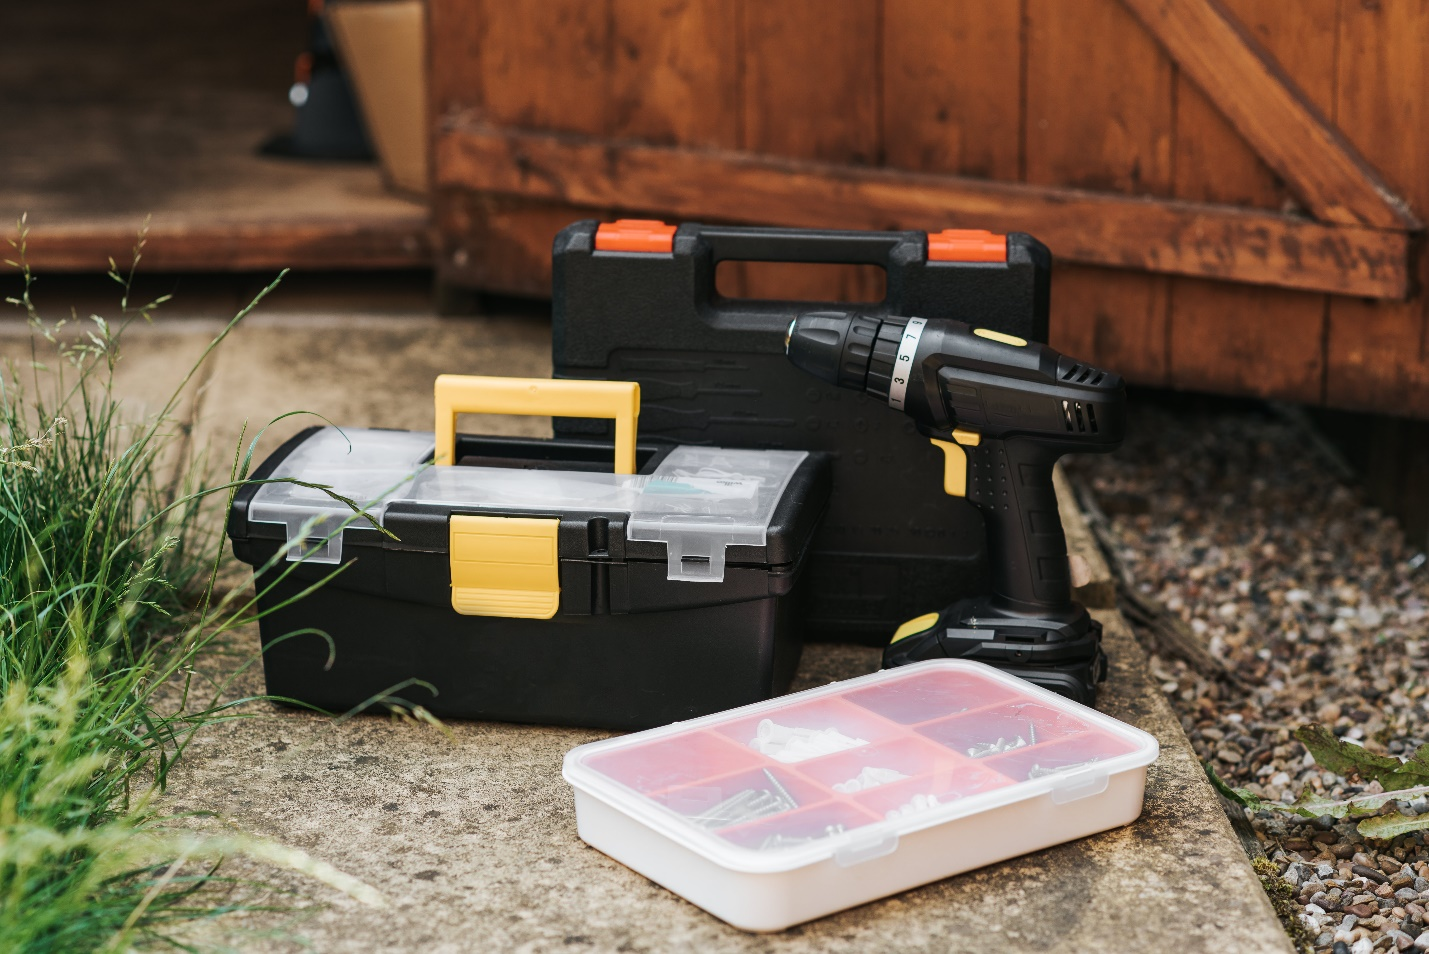 high-quality hand tools placed inside toolboxes